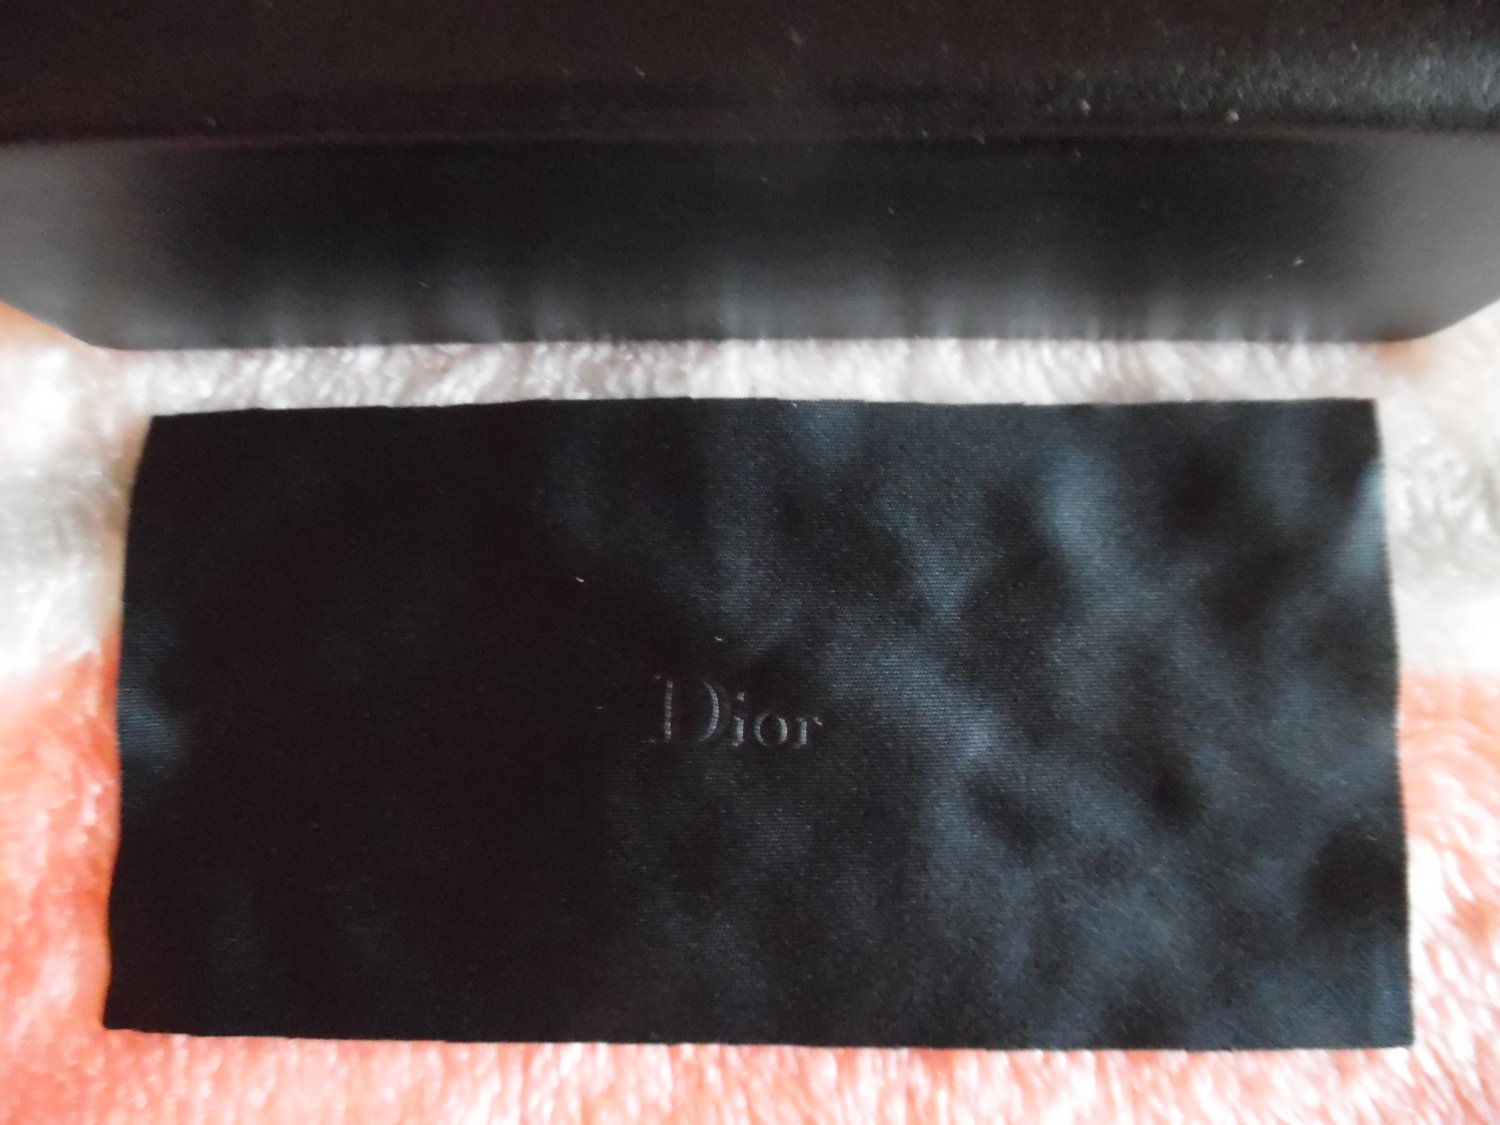 DIOR HOMME Black PU (Faux-Leather) Sunglasses Case With Cleaning Cloth